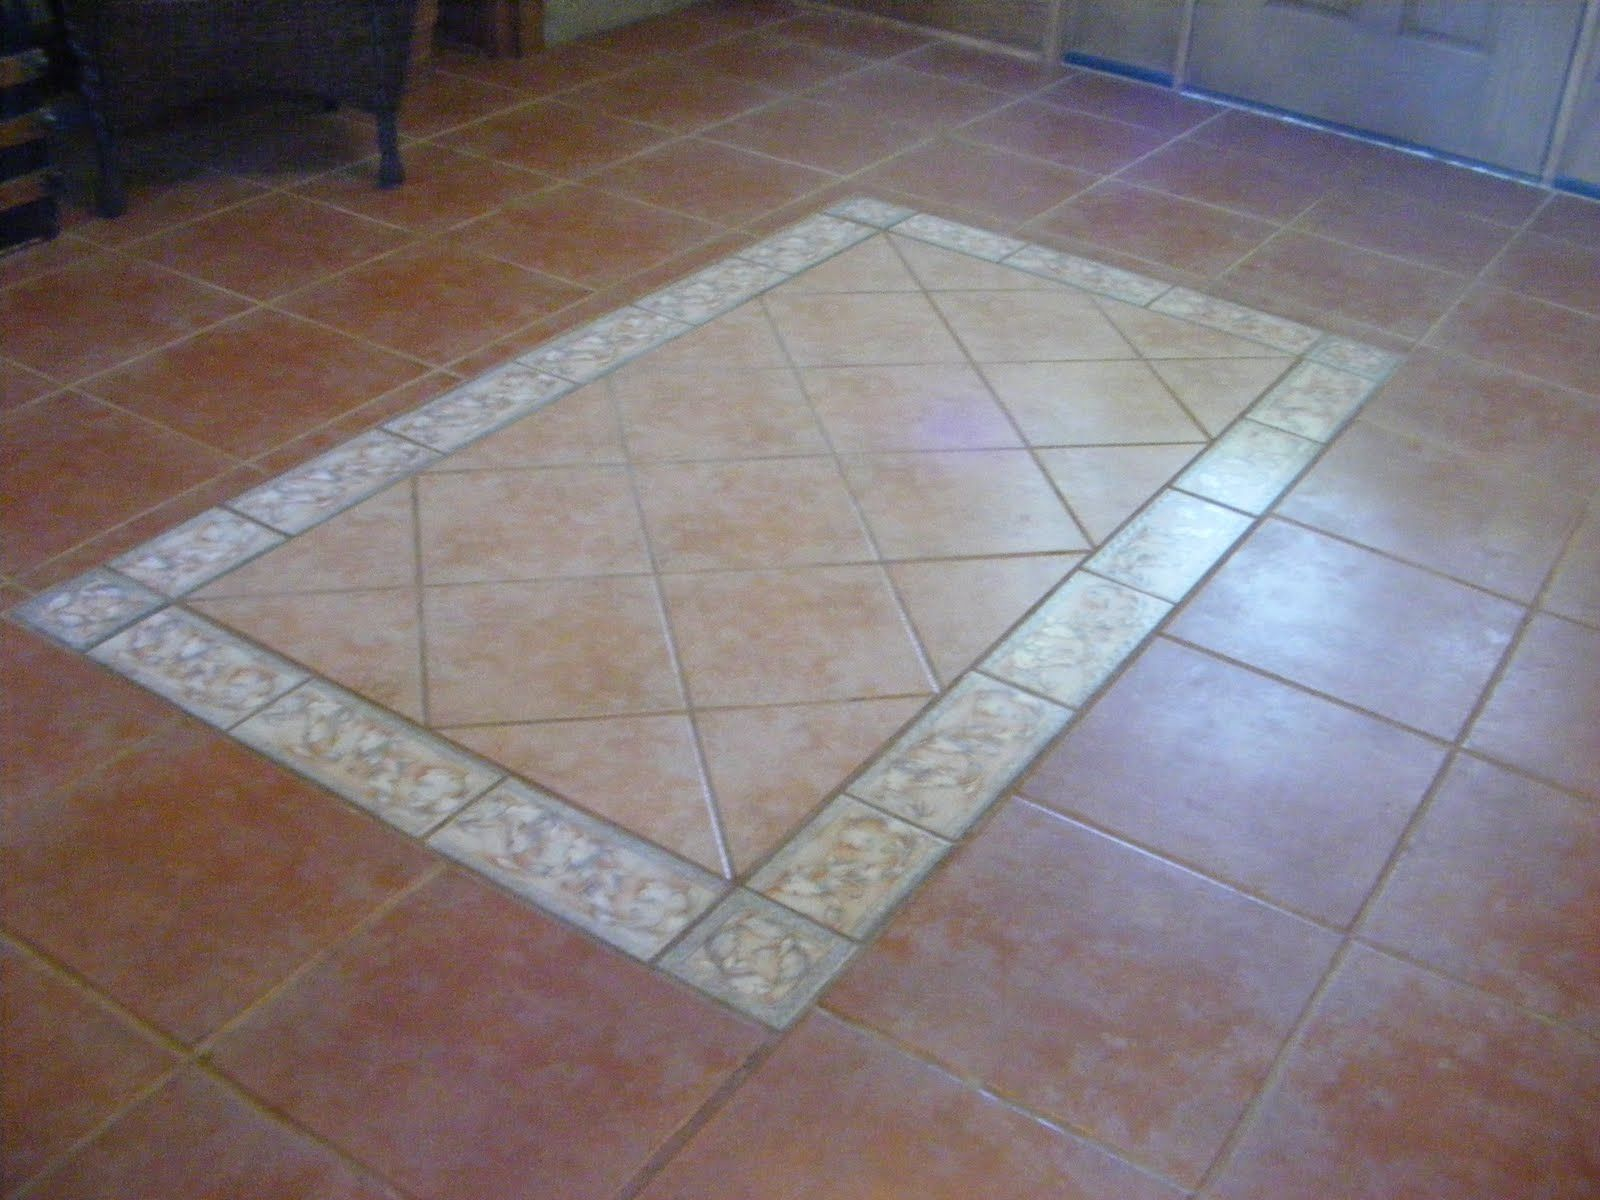 Decoration floor tile design patterns of new inspiration for new tile flooring designs ideas natural clay ceramic tiles with brown tile design tile countertops of awesome pictures of tile floor patterns design from dailygadgetfo Gallery